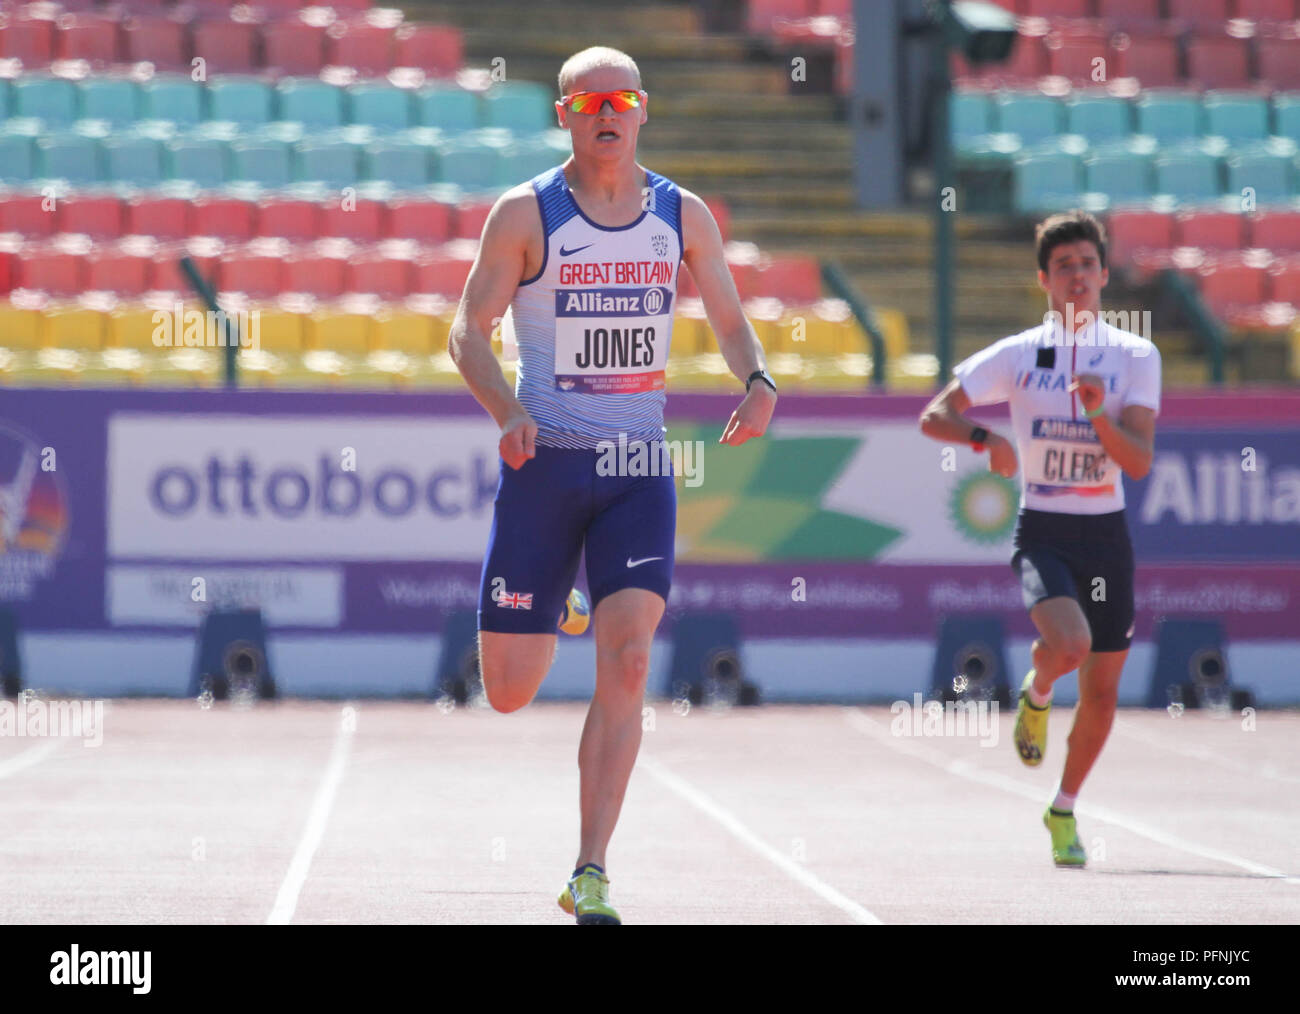 Berlin, Germany. 22nd August, 2018. Rhys Jones competes in the 100m during Day 3 of the World Para Athletics European Championships in Berlin, Germany Credit: Ben Booth/Alamy Live News - Stock Image